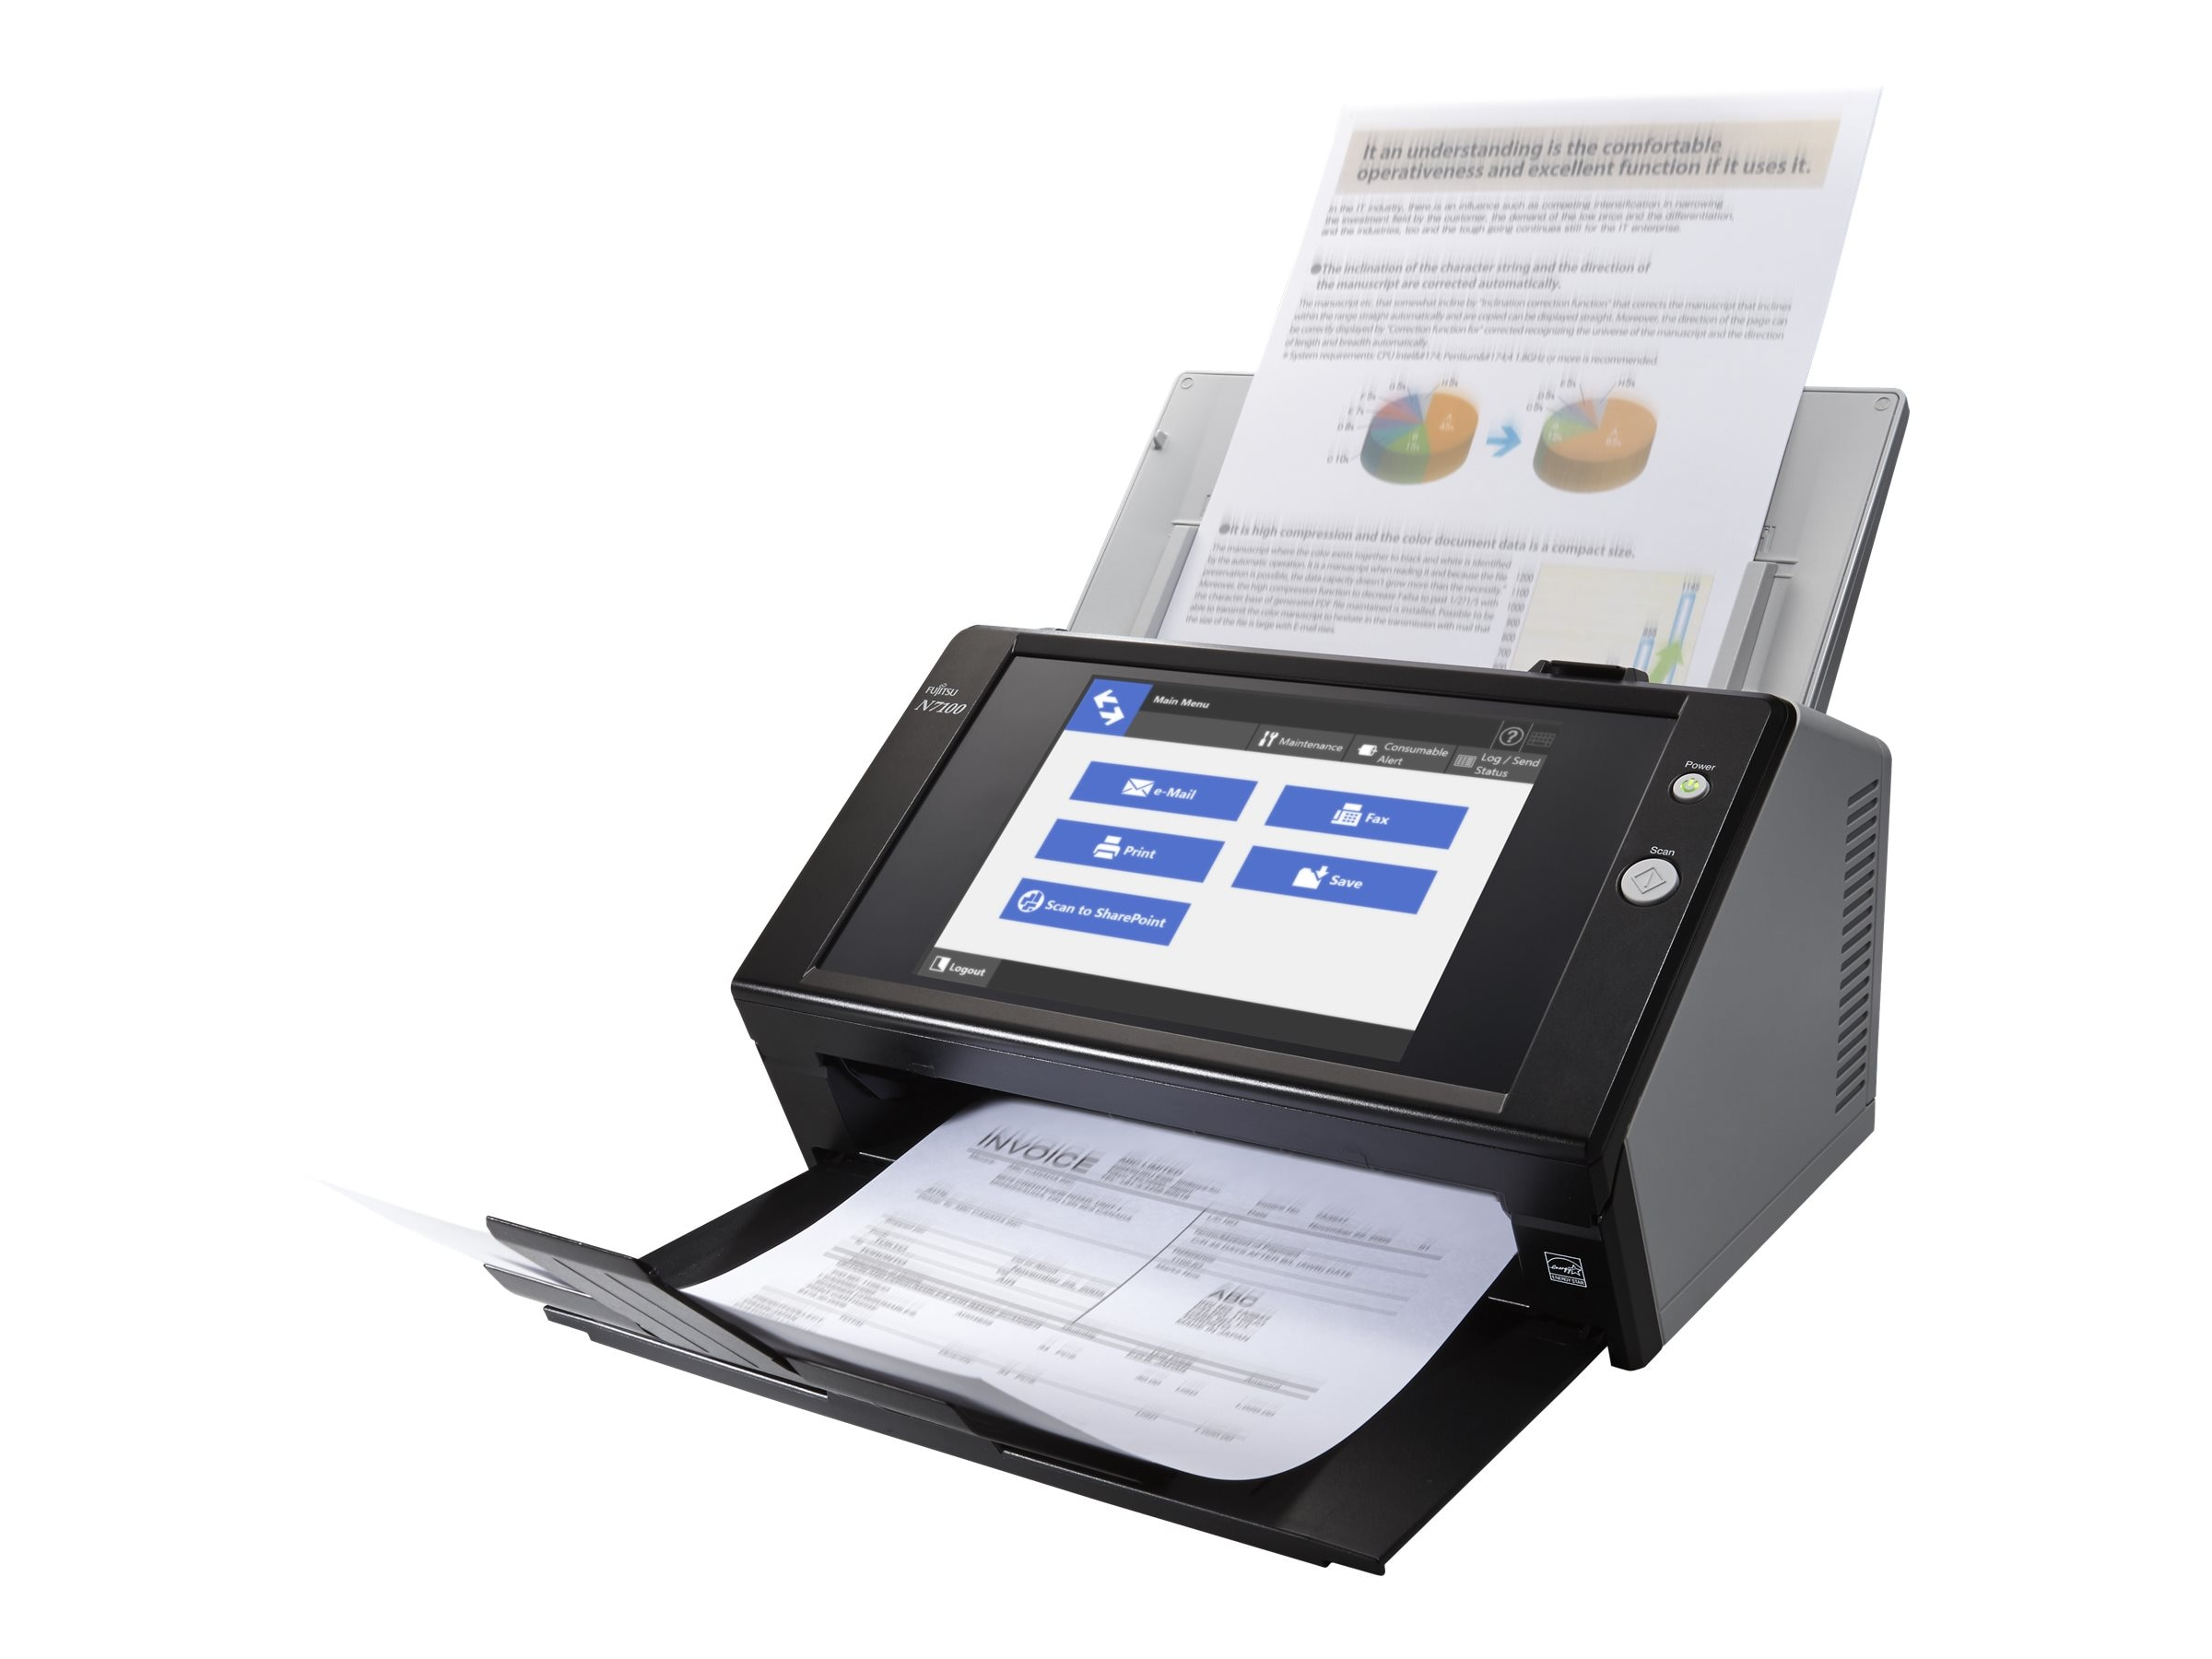 Refurb. Fujitsu N7100 Color Network Scanner